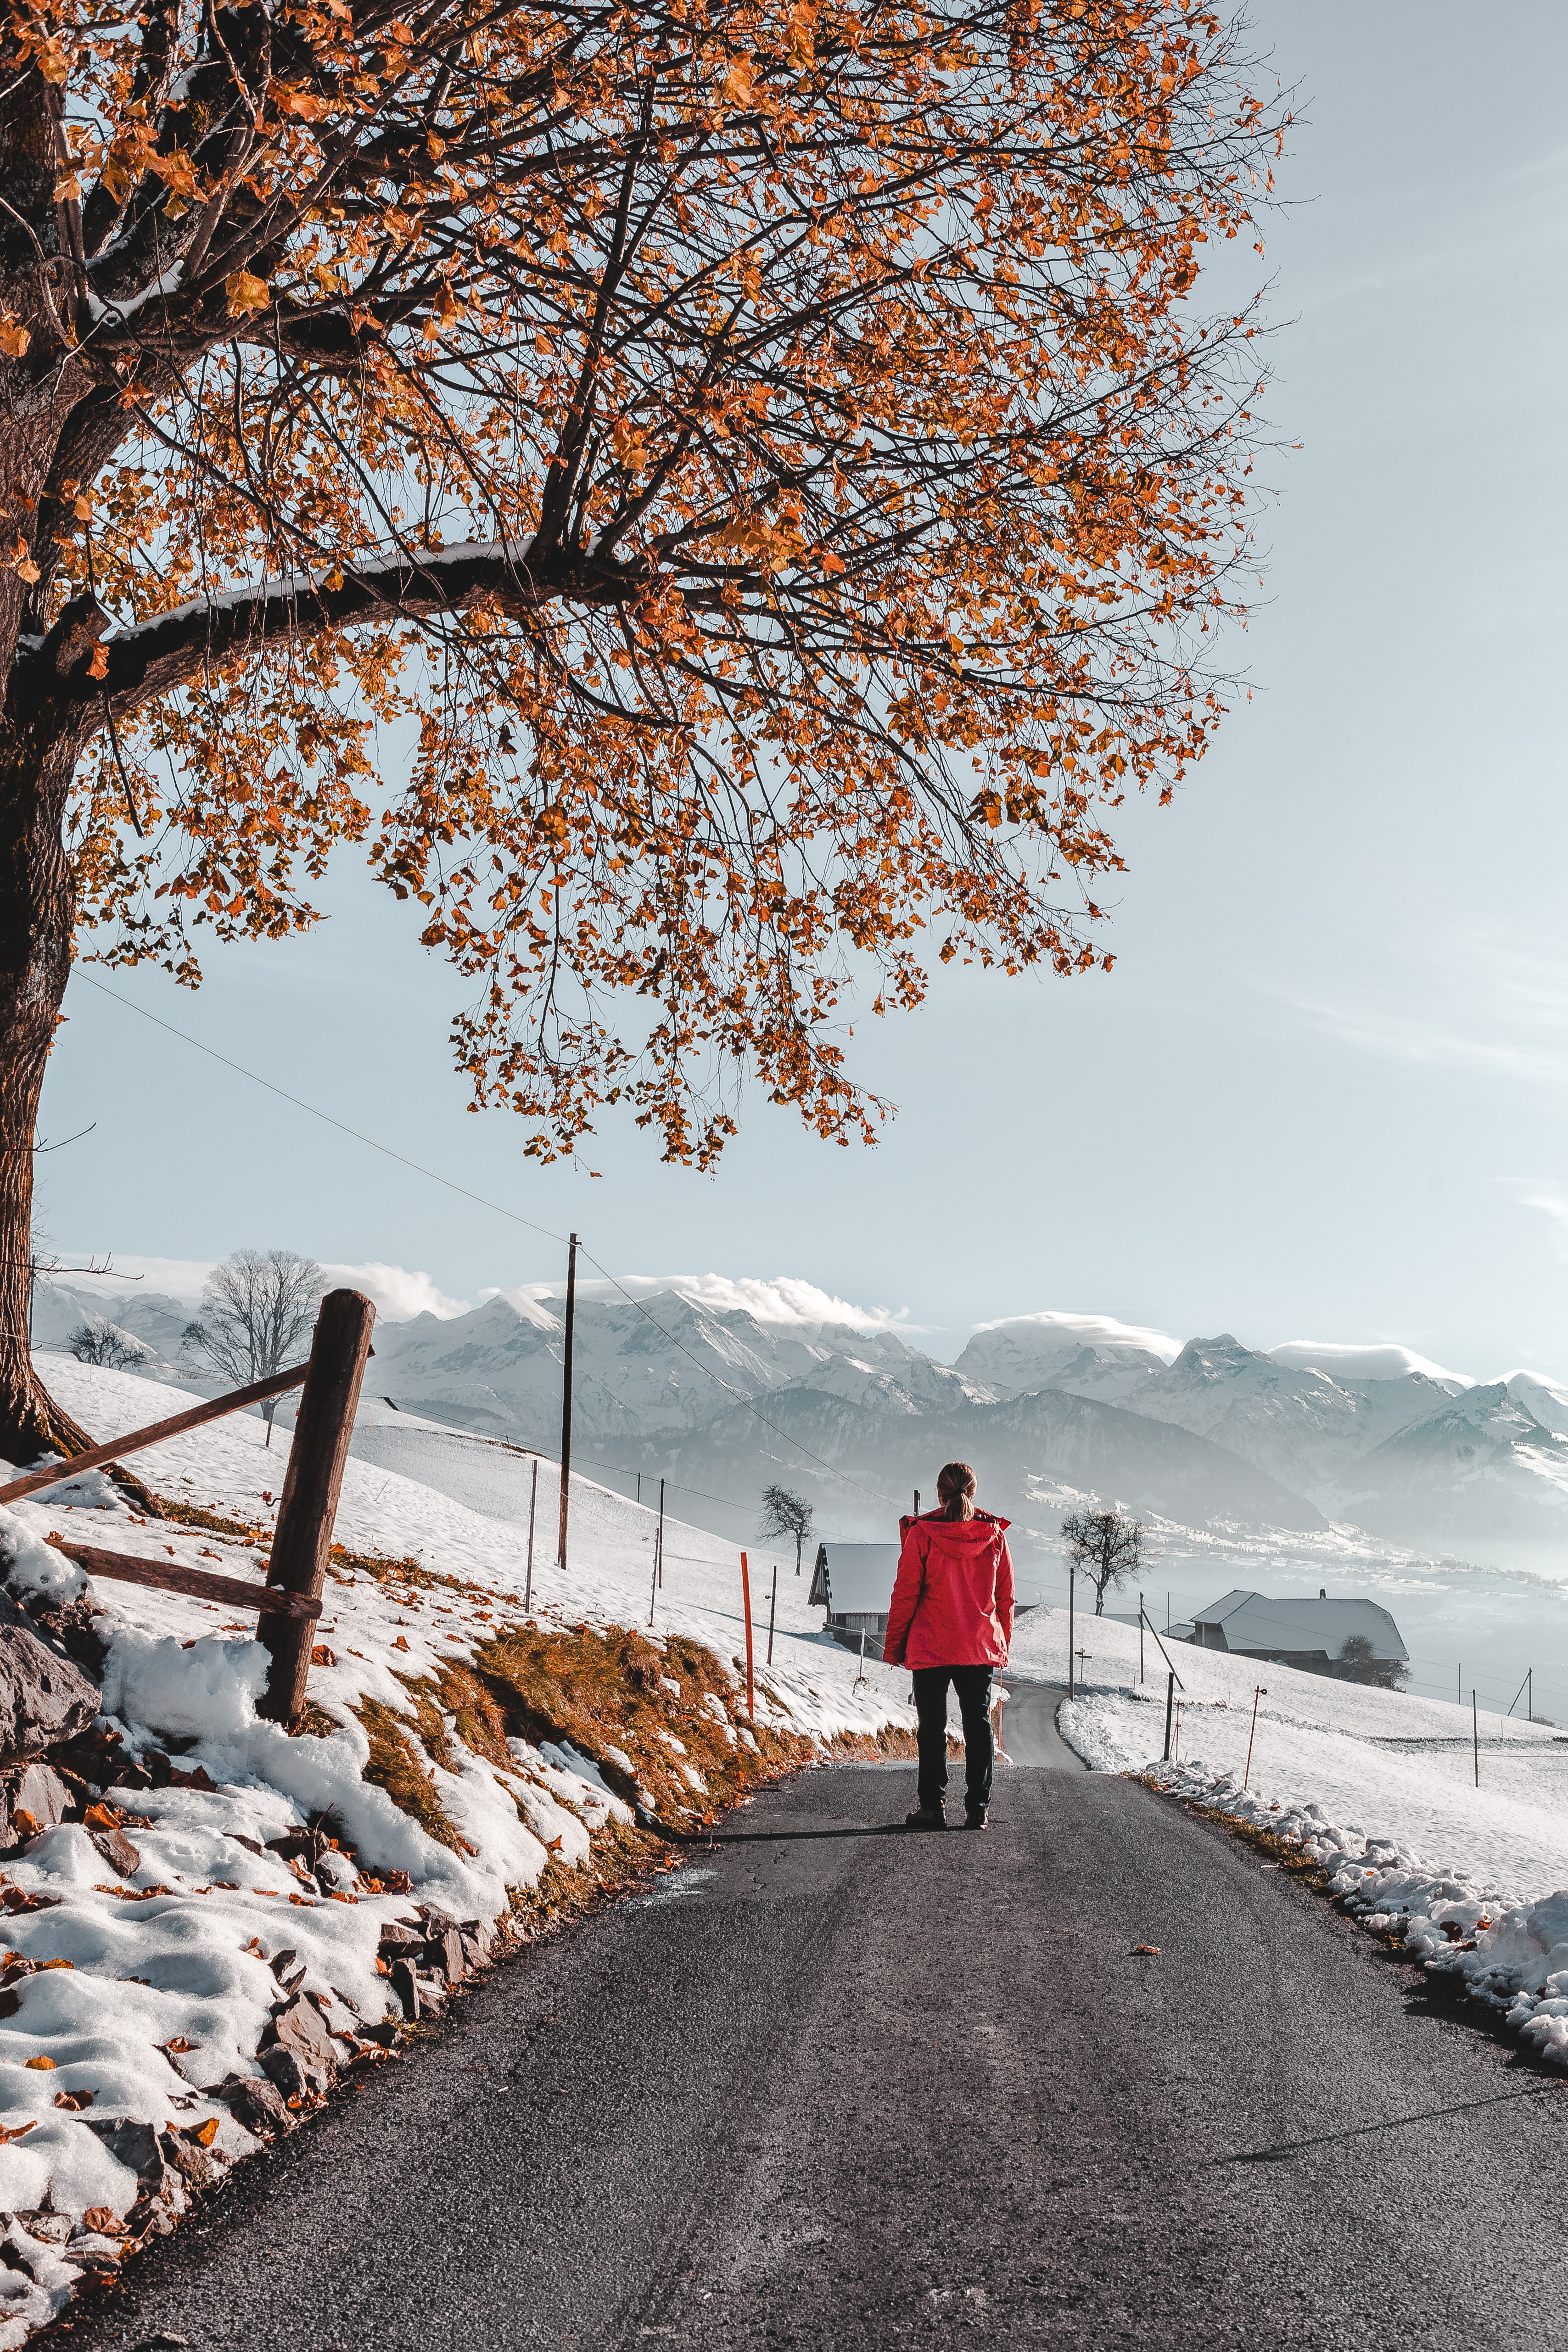 photo of person walking on road wearing red jacket